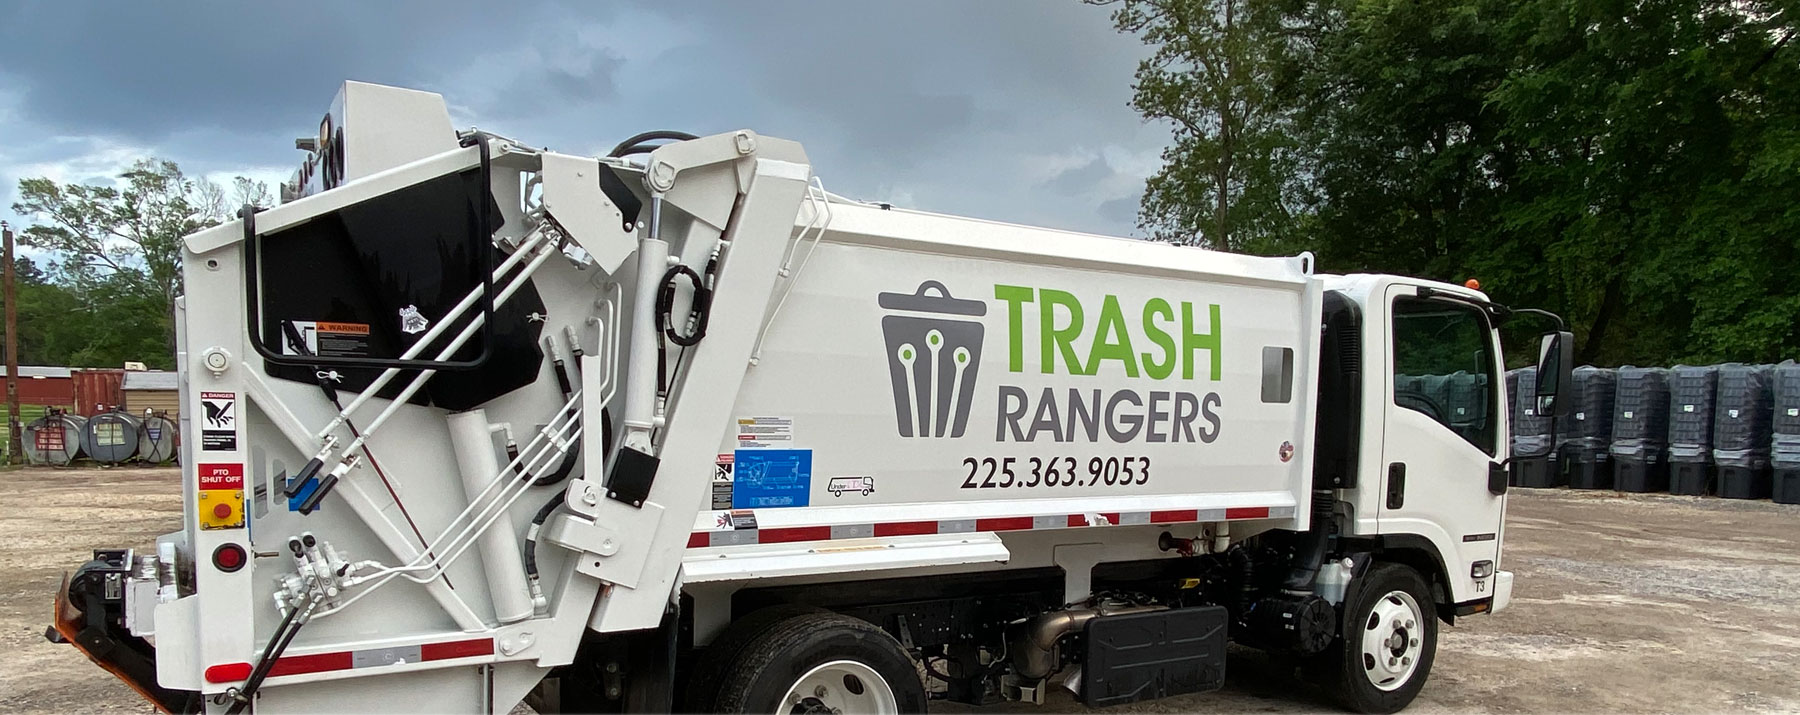 Contact Trash Rangers Residential Garbage Collection In Ascension